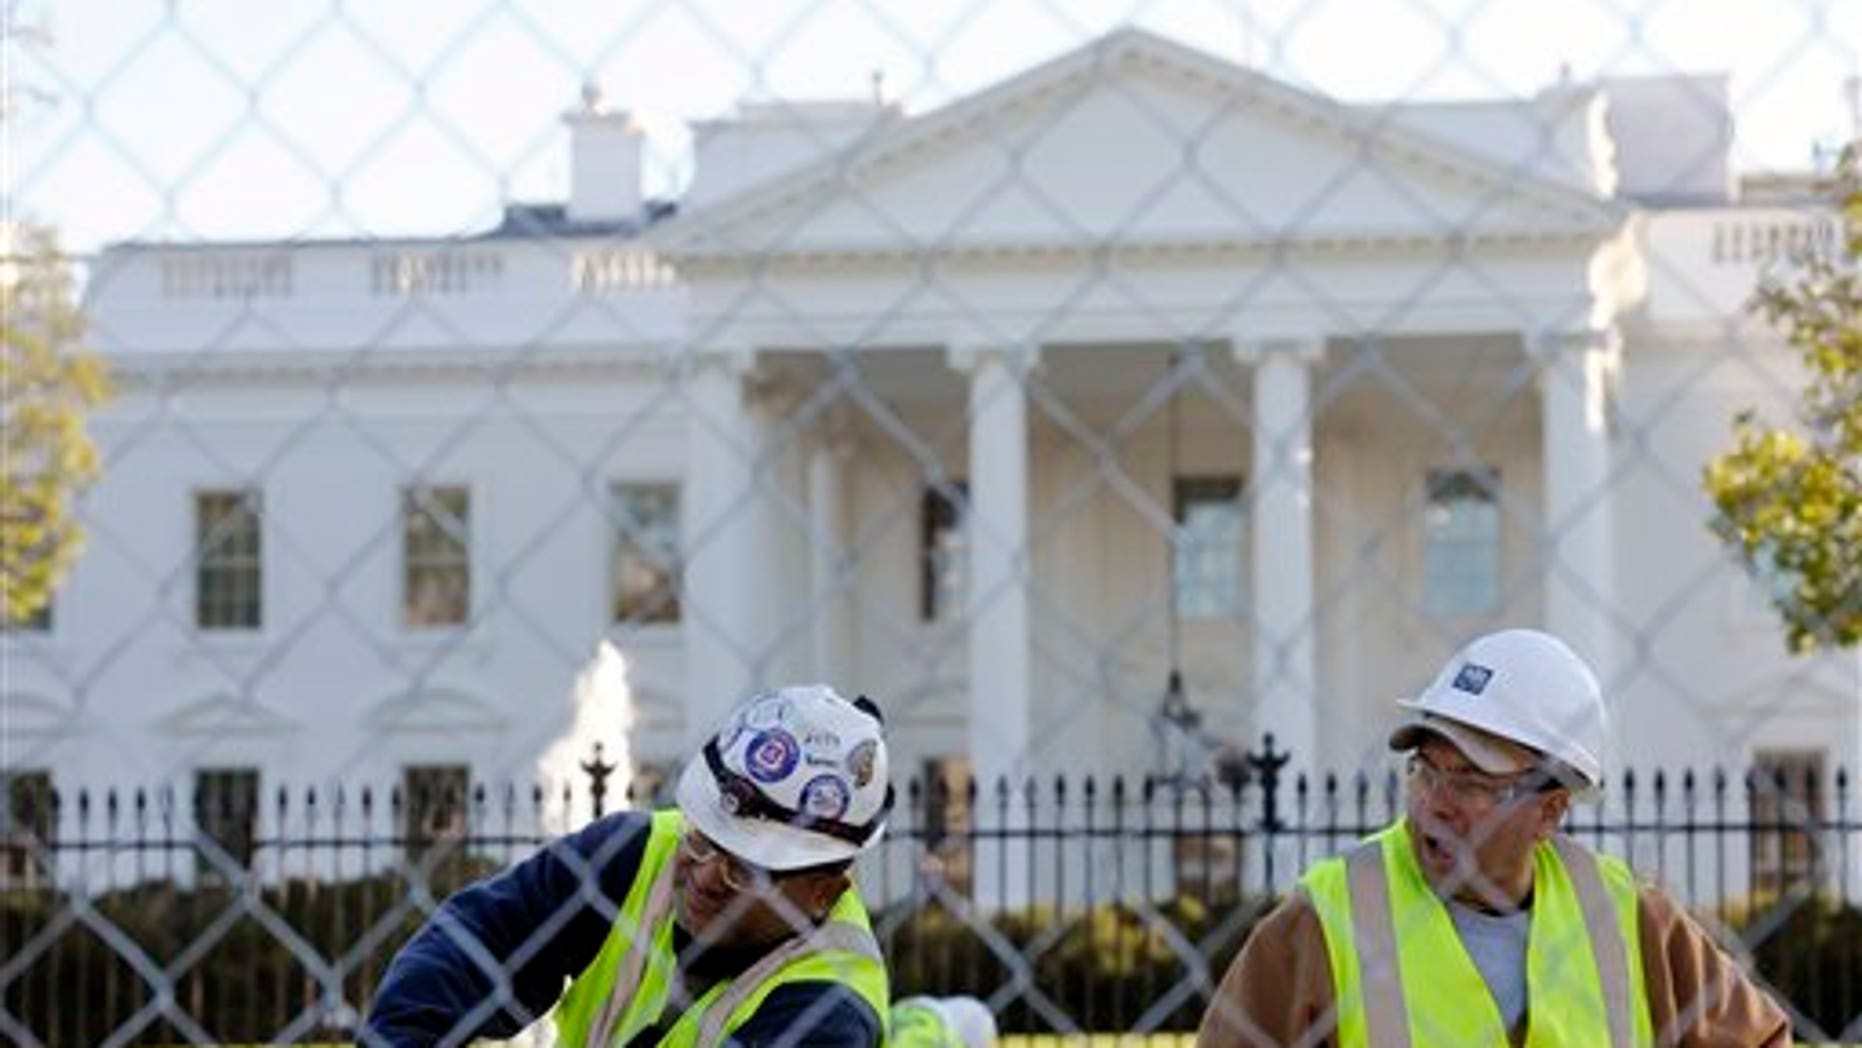 Nov. 8, 2012: Workers secure rebar for concrete footings for the Presidential Inauguration reviewing stand in front of the White House.